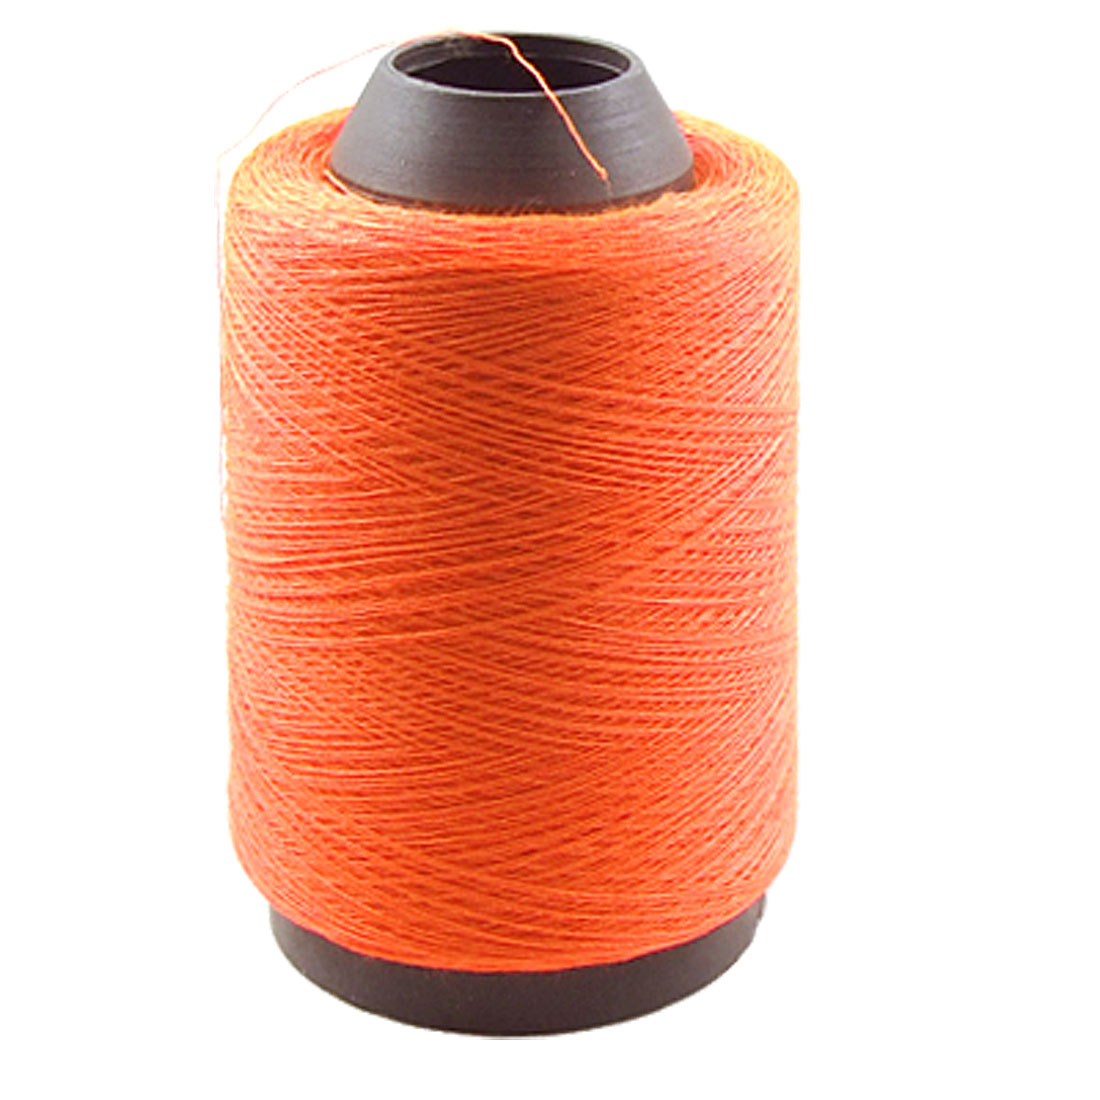 Tailor Home Hand Machine Embroidery Thread Spool Orange Red